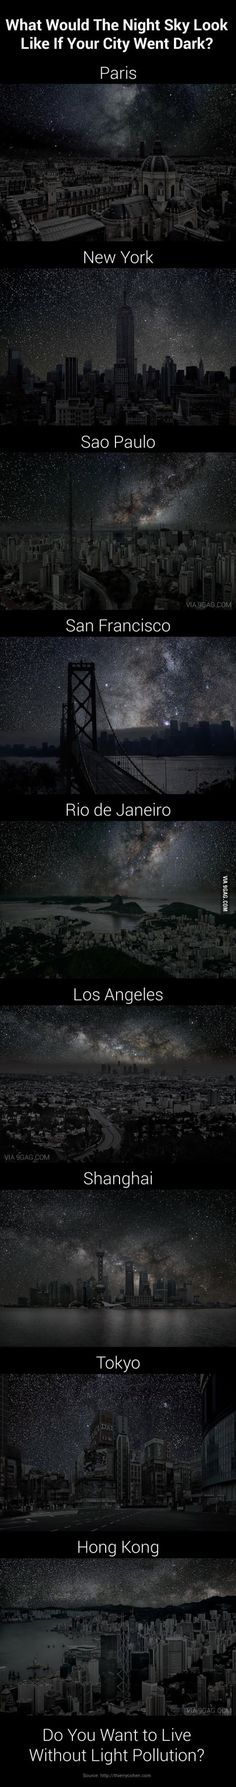 9 Amazing Night Sky of 9 Darkened Cities